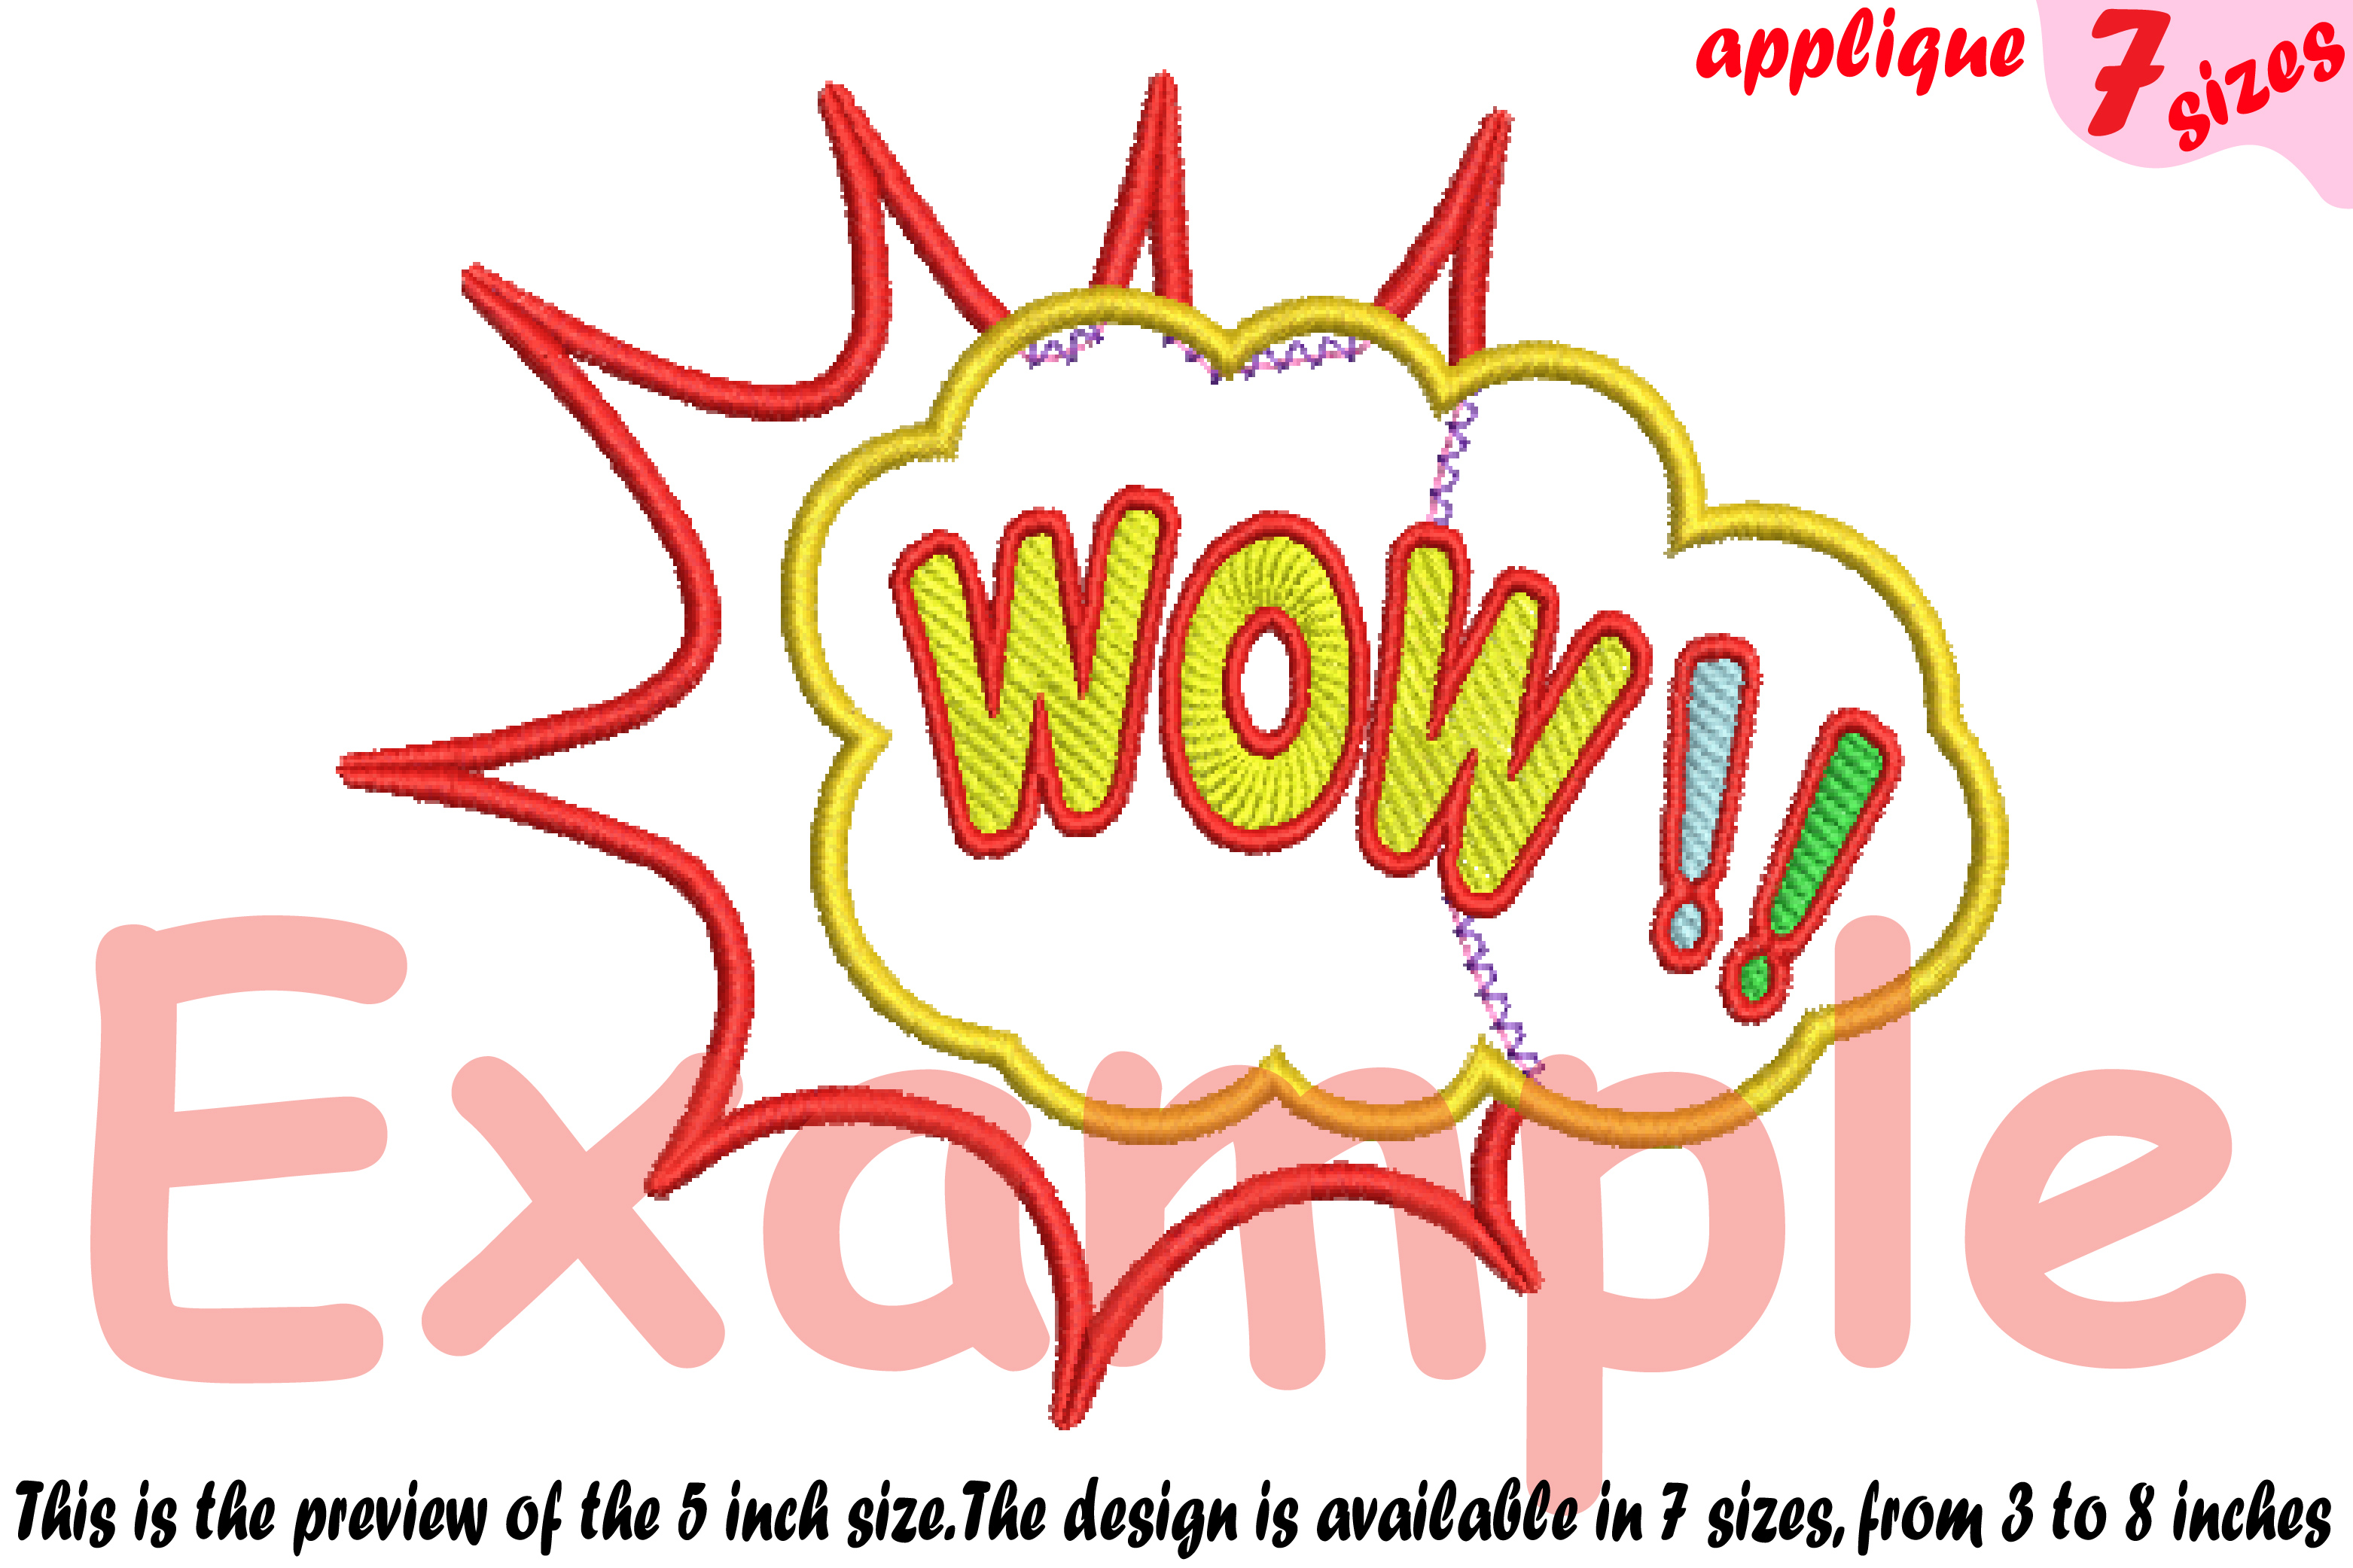 Wow Comic Book Applique Designs for Embroidery Machine Instant Download  Commercial Use digital file icon symbol sign pop Art Bubbles 3a